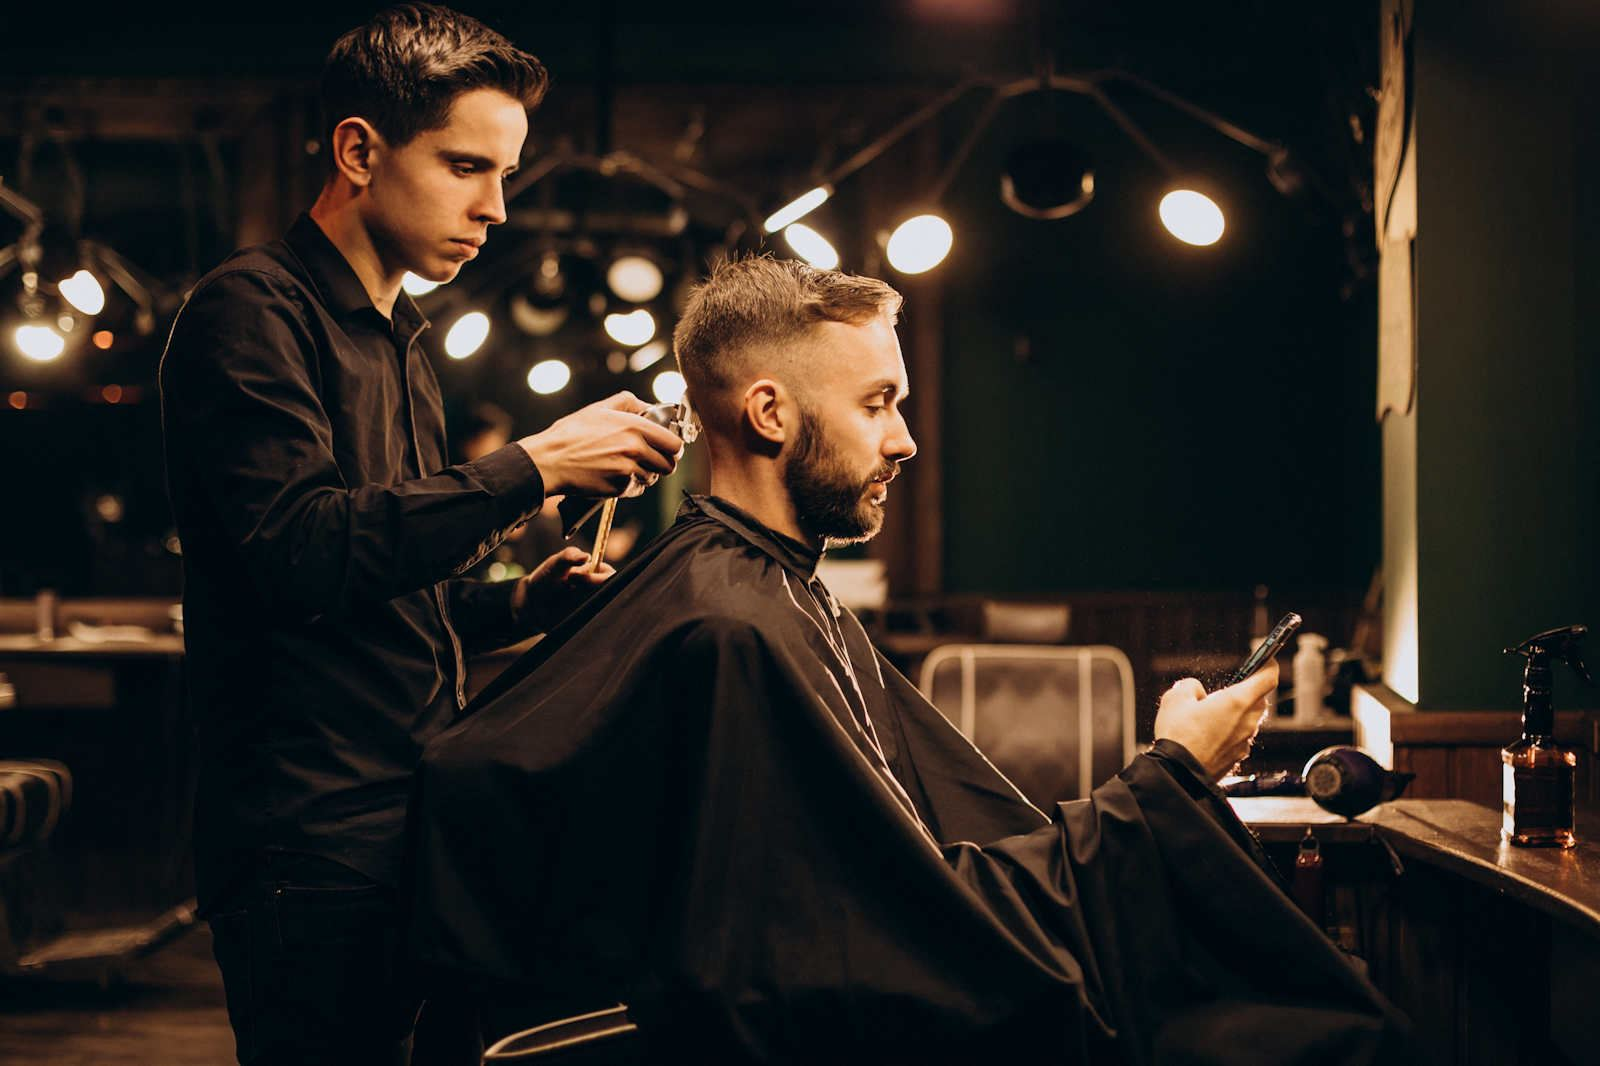 The Barber Shop by ZigZag of Hillarys